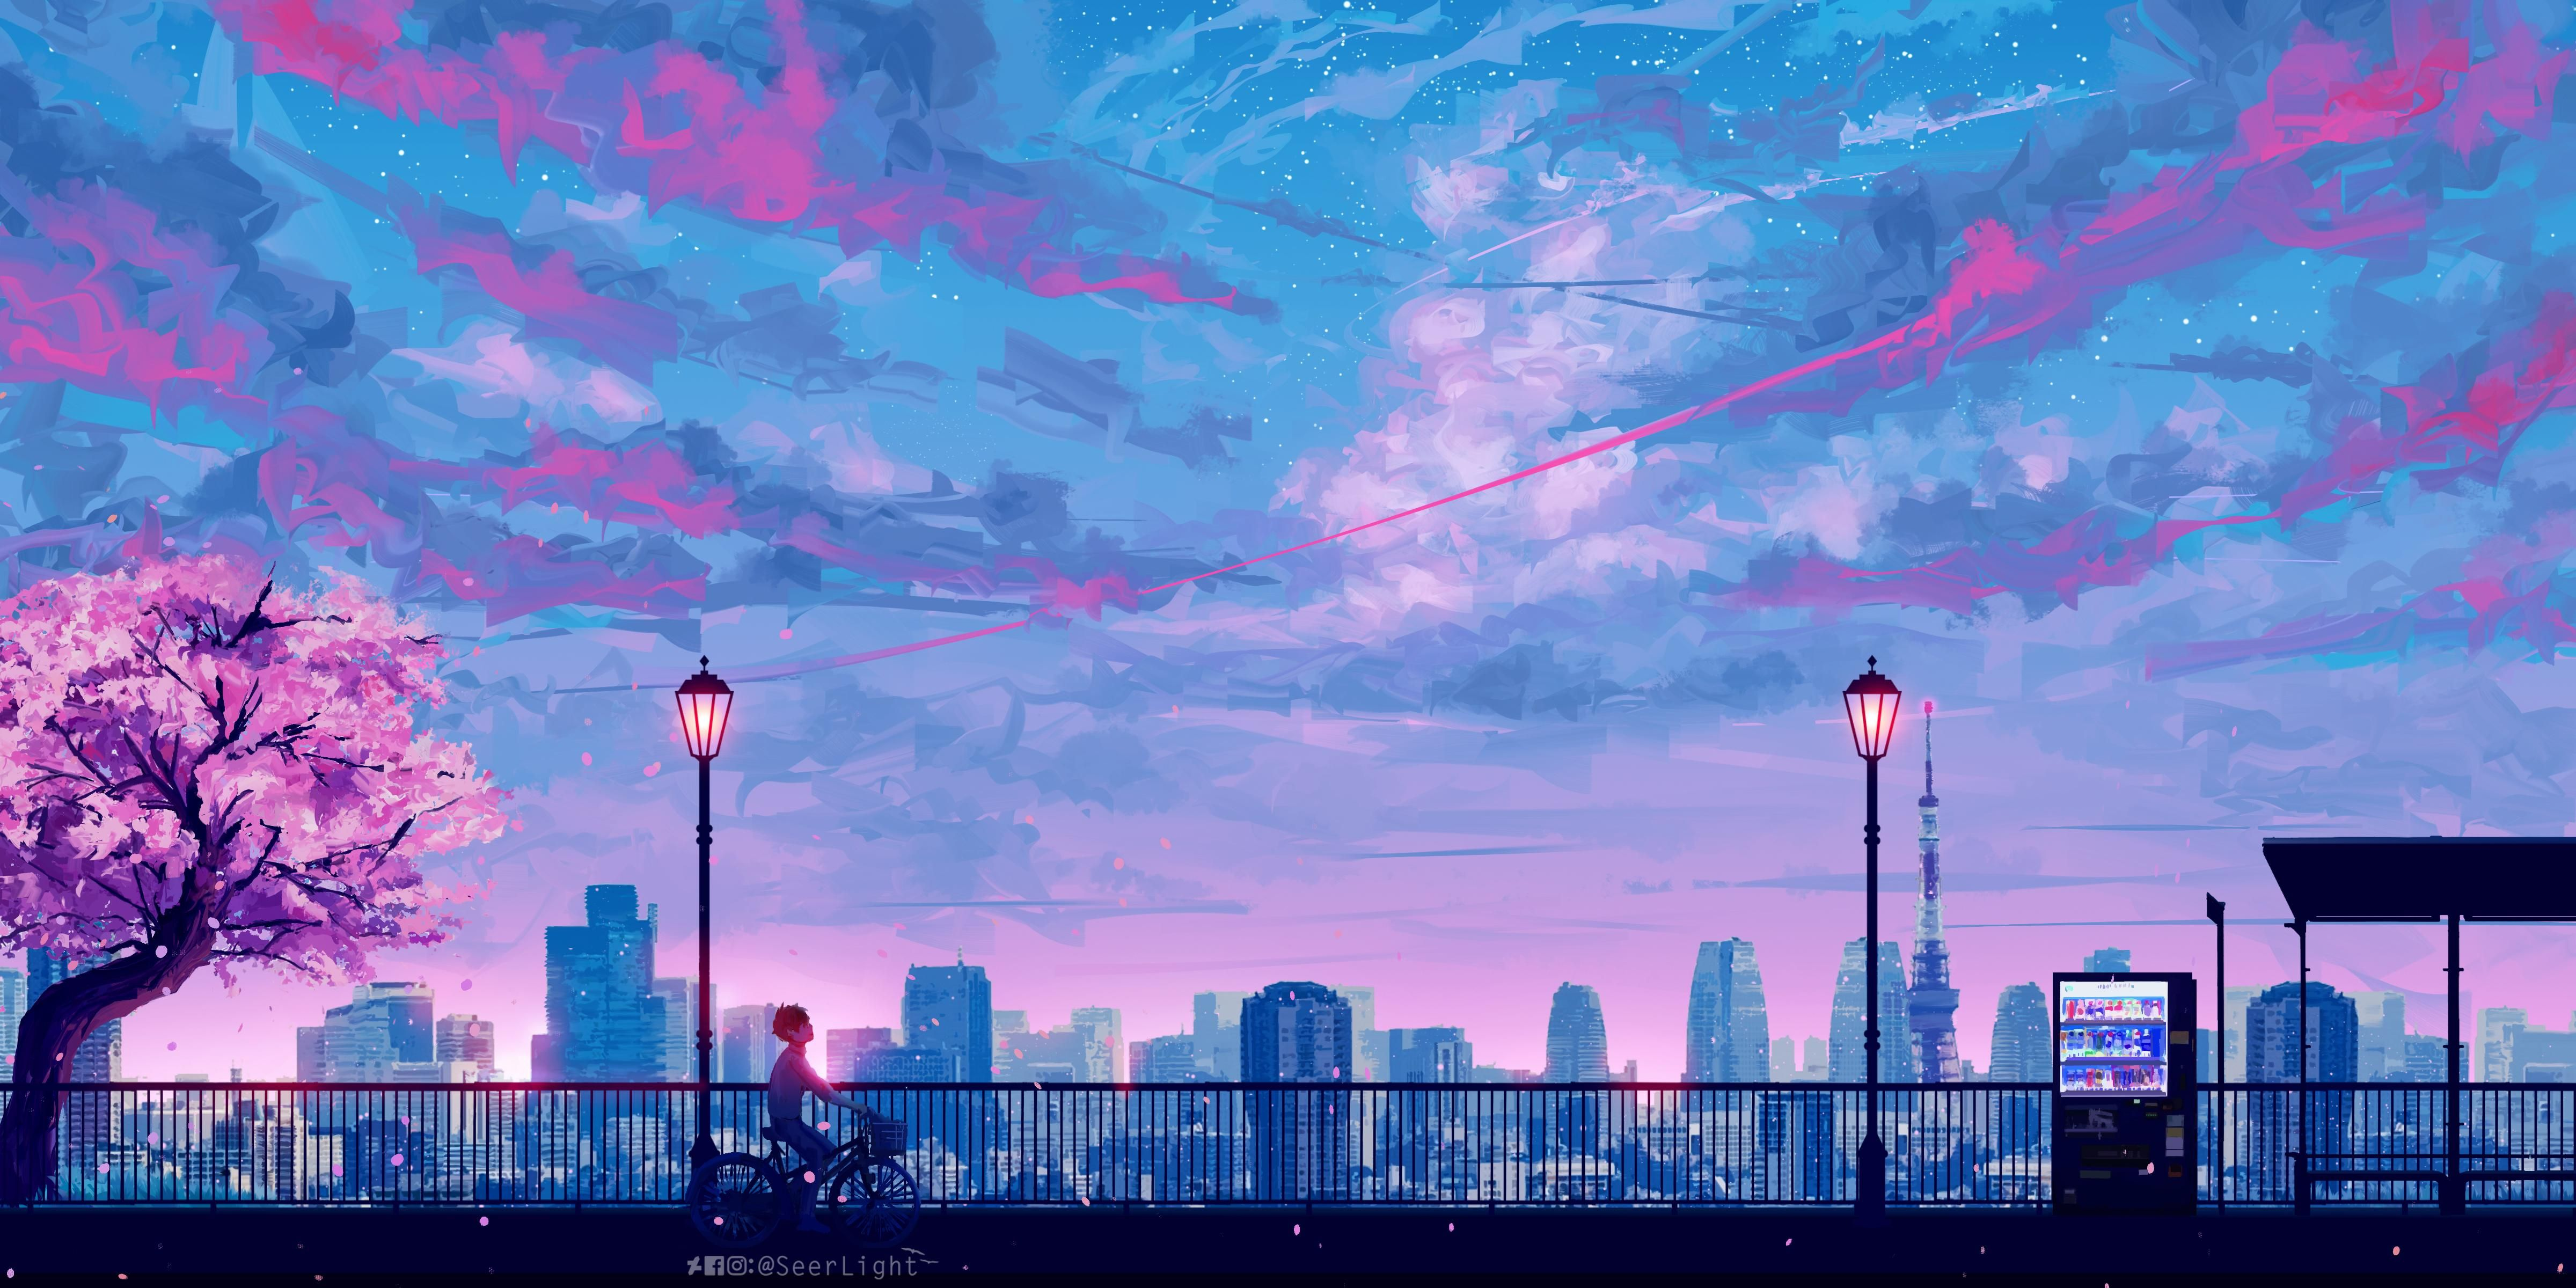 Let's Go Home by Seerlight [4800x2400] Aesthetic desktop